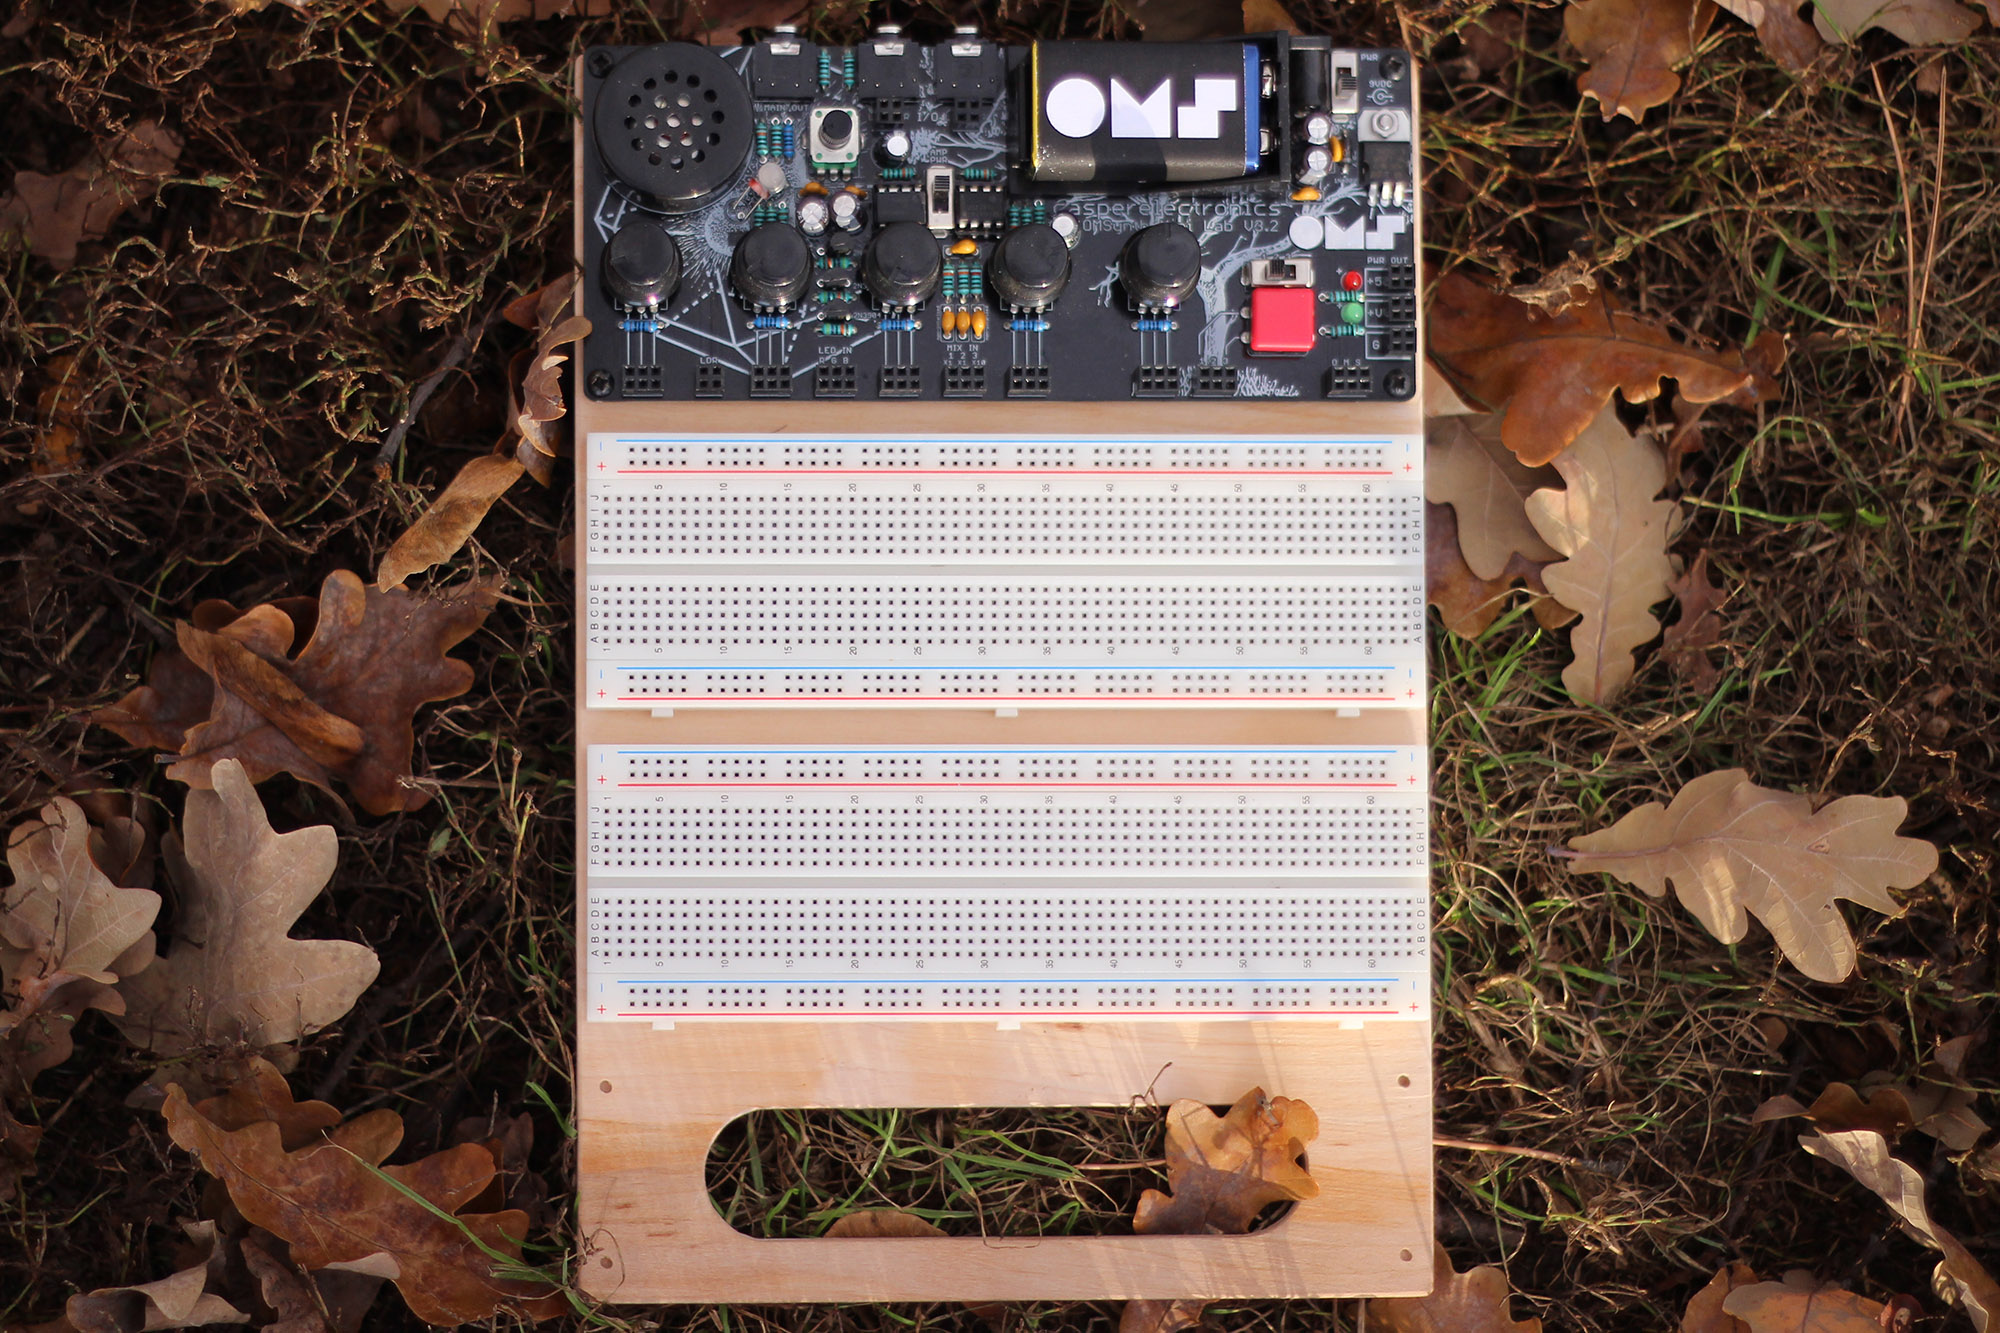 Casper Electronics Intros OMSynth MiniLab Modular Synth DIY